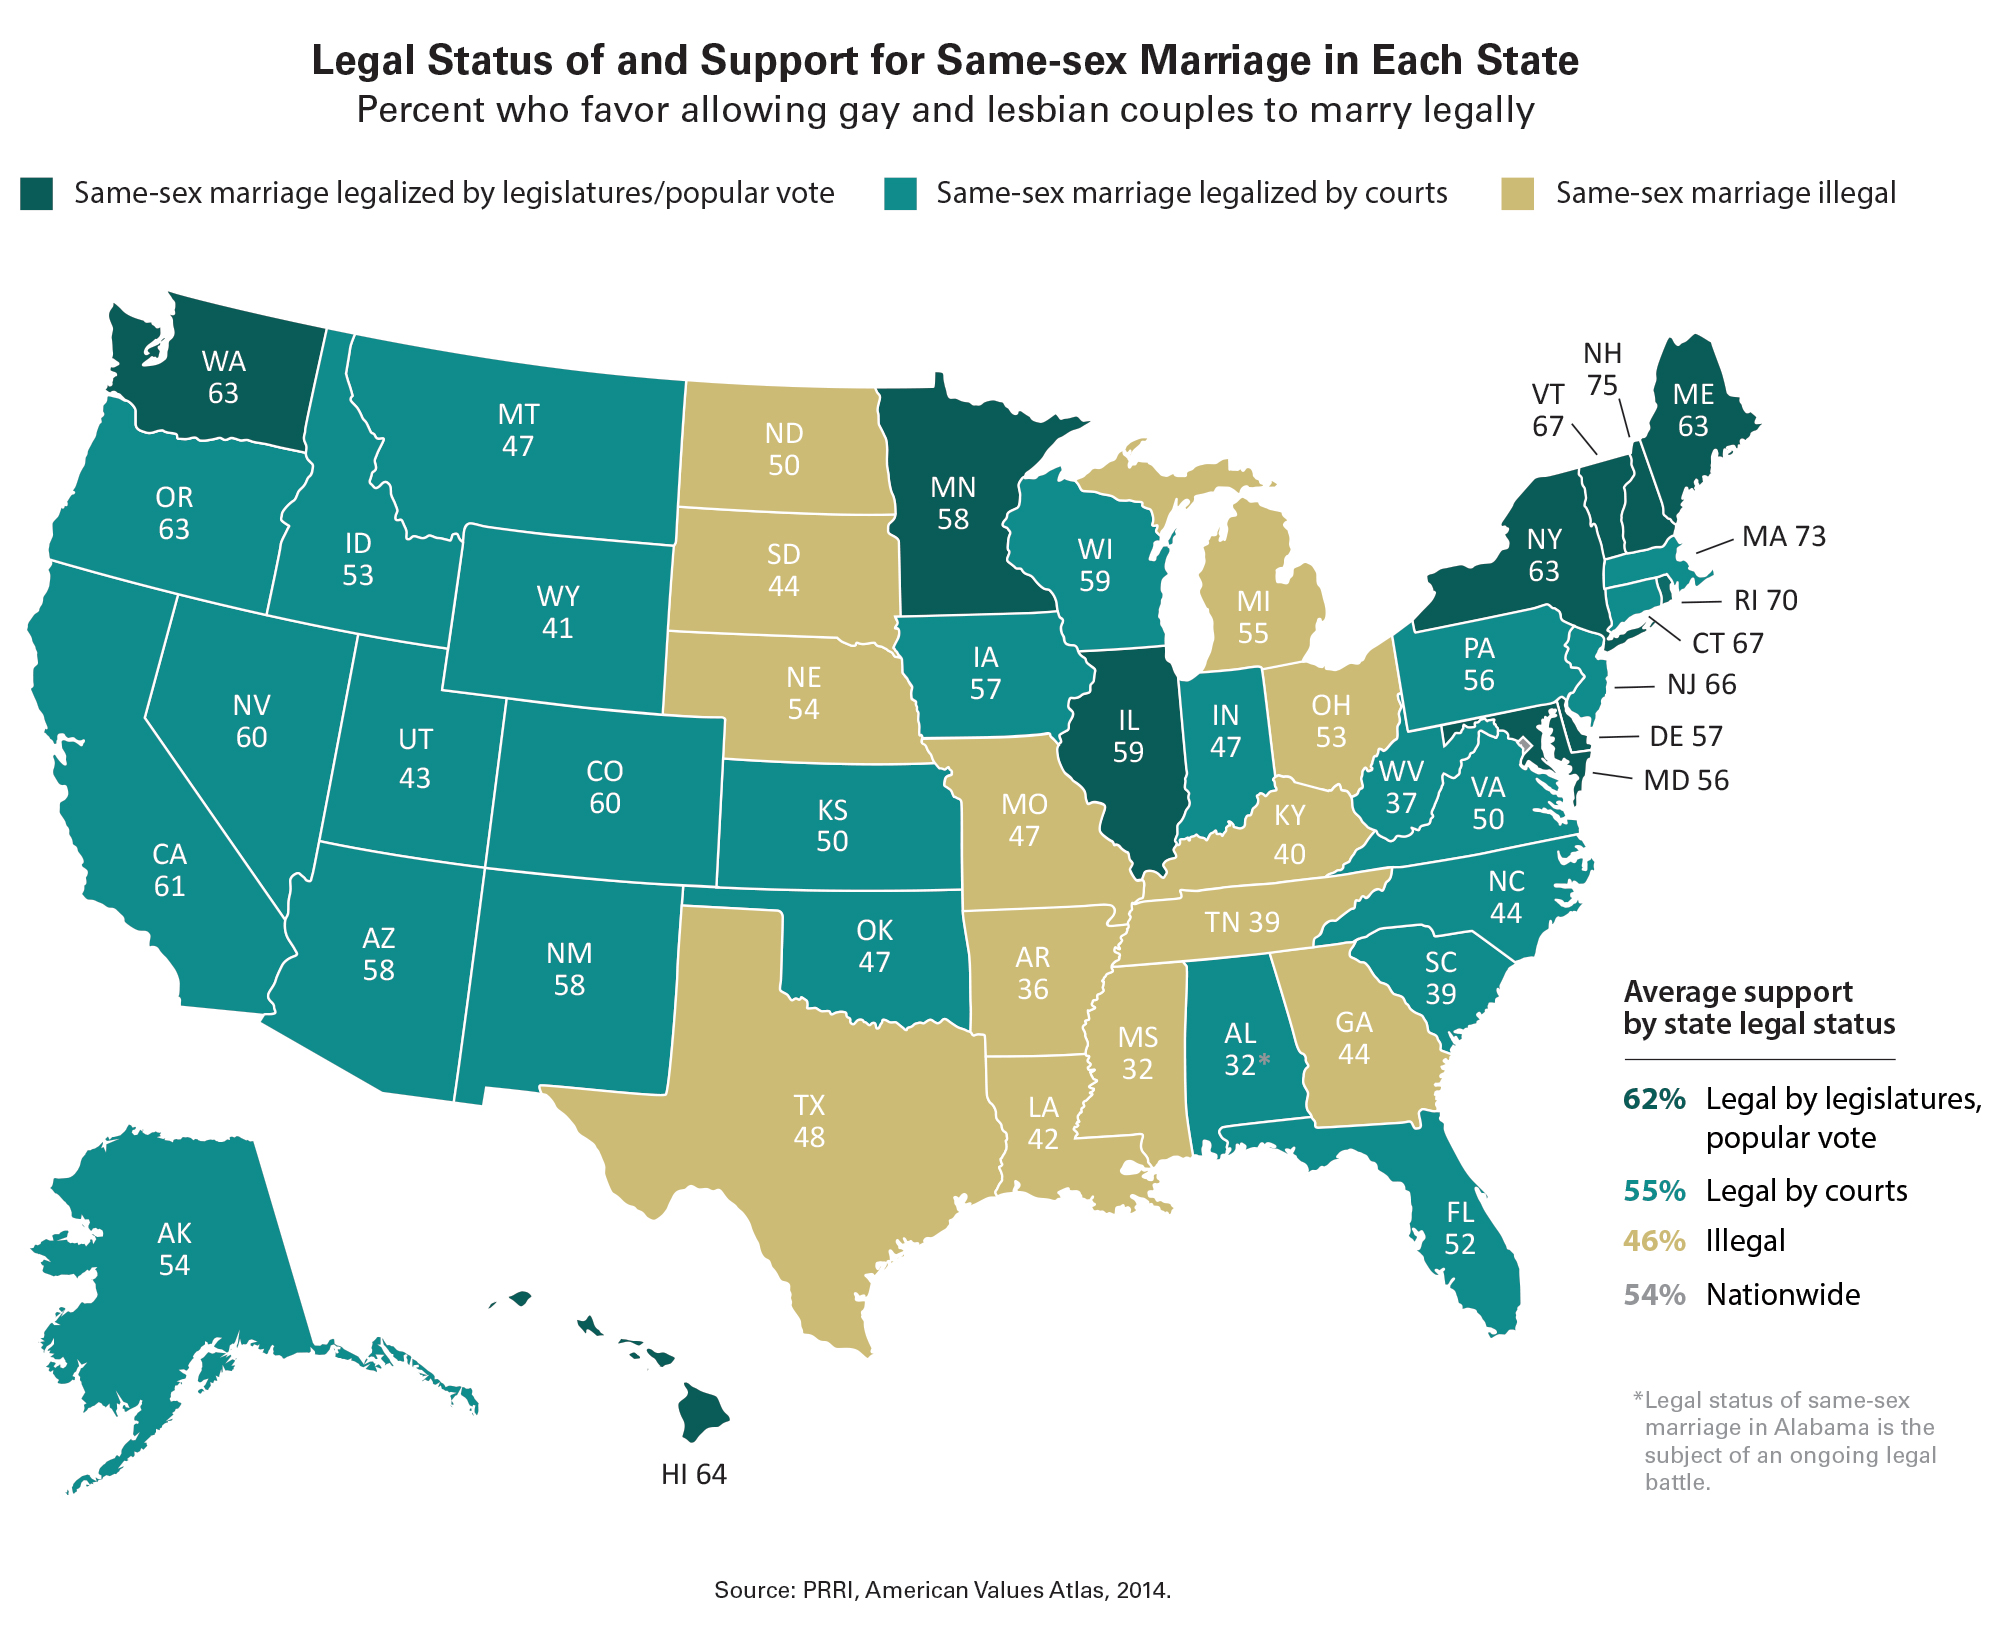 an analysis of the same sex marriage in the united states This survey shows the opinion on legalization of same-sex marriages in the united states from 1996 to 2017 in 1996, 27 percent of respondents agreed that same-sex marriages should be recognized by law as valid with the same rights as traditional marriages, while 68 percent of respondents opposed this notion.